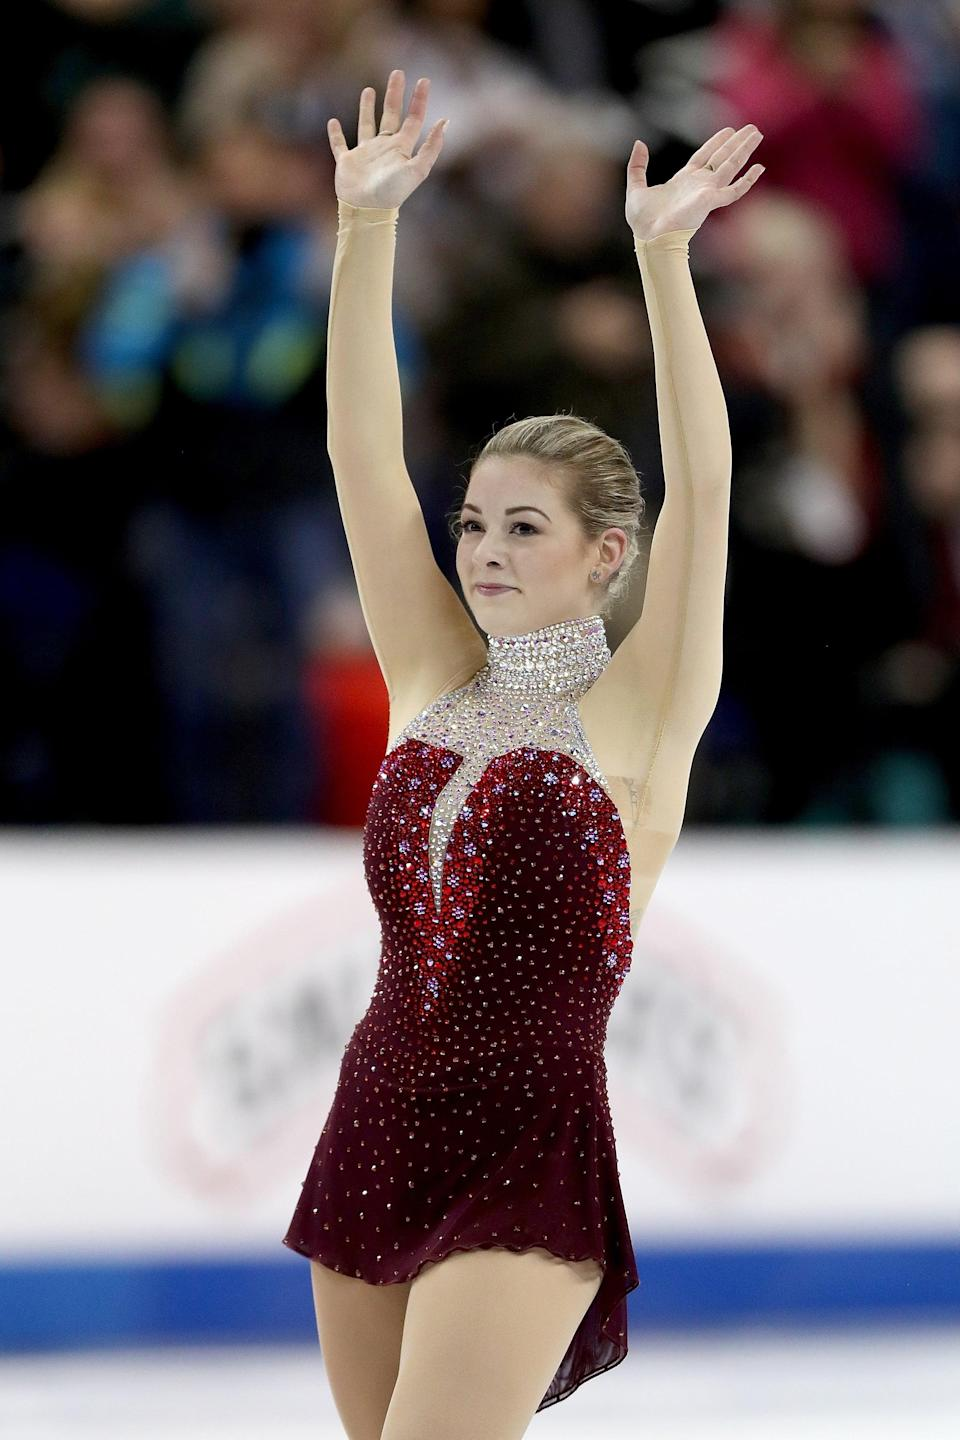 """<p>Gracie Gold may have won an Olympic bronze medal in figure skating, but arguably, some of her greatest contributions to the sport came after she left the ice. In 2016, <a href=""""https://www.popsugar.com/fitness/is-gracie-gold-still-skating-47651875"""" class=""""link rapid-noclick-resp"""" rel=""""nofollow noopener"""" target=""""_blank"""" data-ylk=""""slk:Gold stepped away from figure skating"""">Gold stepped away from figure skating</a> to seek treatment for anxiety, depression, and an eating disorder, and though she has since <a href=""""https://www.popsugar.com/fitness/gracie-gold-free-skate-2020-us-figure-skating-championships-47143331"""" class=""""link rapid-noclick-resp"""" rel=""""nofollow noopener"""" target=""""_blank"""" data-ylk=""""slk:returned to the sport"""">returned to the sport</a>, she continues to encourage other athletes to speak out about mental health. """"<a href=""""https://twitter.com/olympicchannel/status/1288481151728979969"""" class=""""link rapid-noclick-resp"""" rel=""""nofollow noopener"""" target=""""_blank"""" data-ylk=""""slk:There is not an Olympic medal for who can suffer in silence the longest"""">There is not an Olympic medal for who can suffer in silence the longest</a>,"""" Gold said in an interview with the Olympic Channel.</p>"""